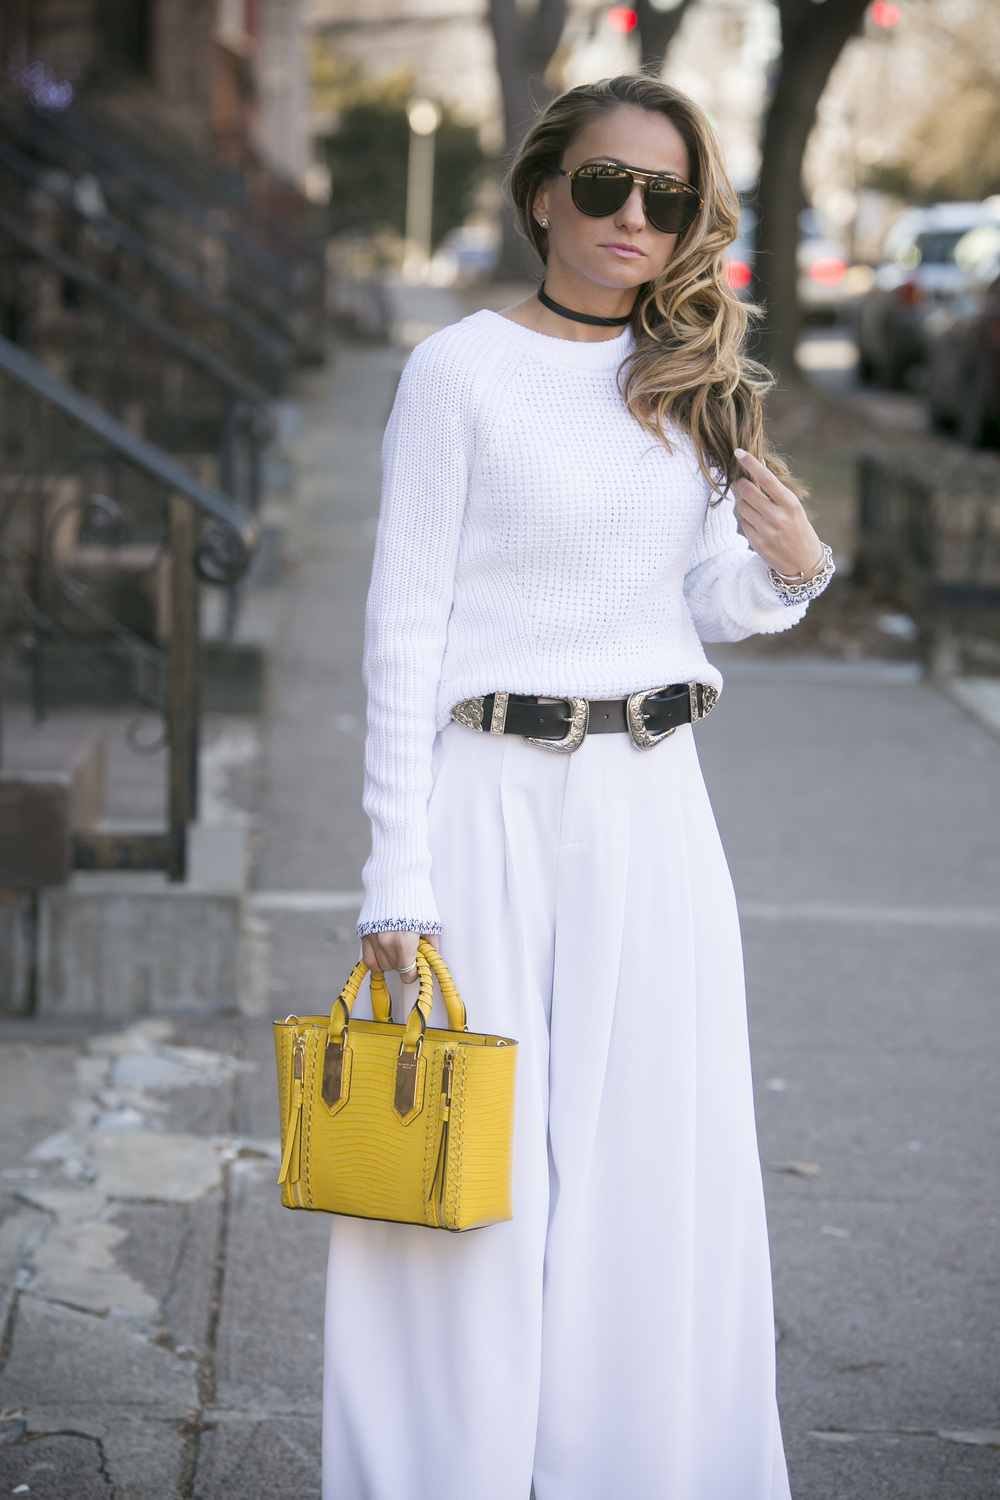 North of Manhattan wearing B-low the belt, and Henri Bendel yellow bag with an all white outfit